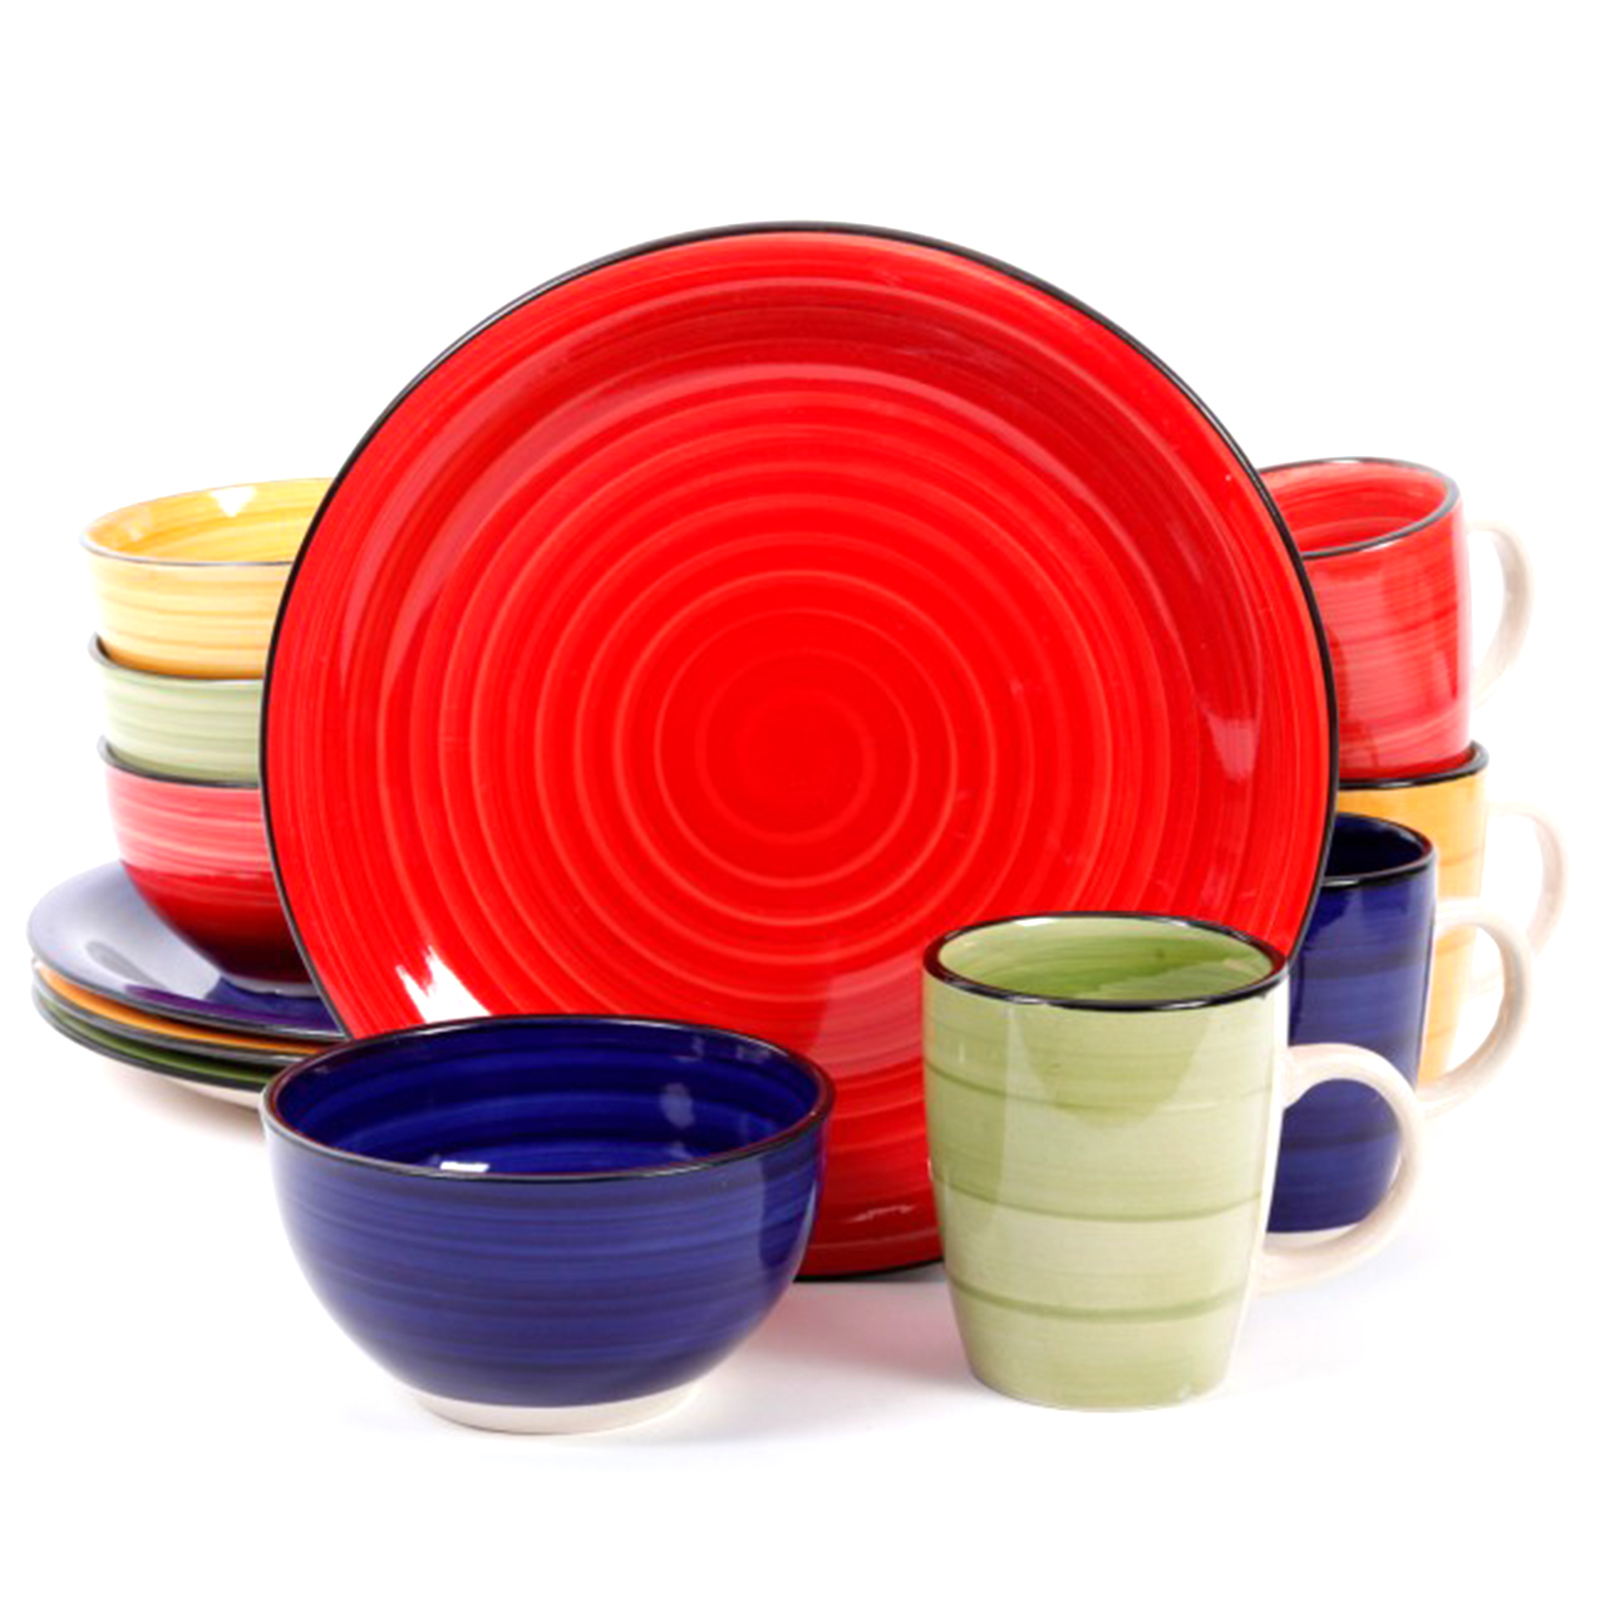 dinnerware sets for 12 gibson home 12 color vibes handpainted stoneware 12224